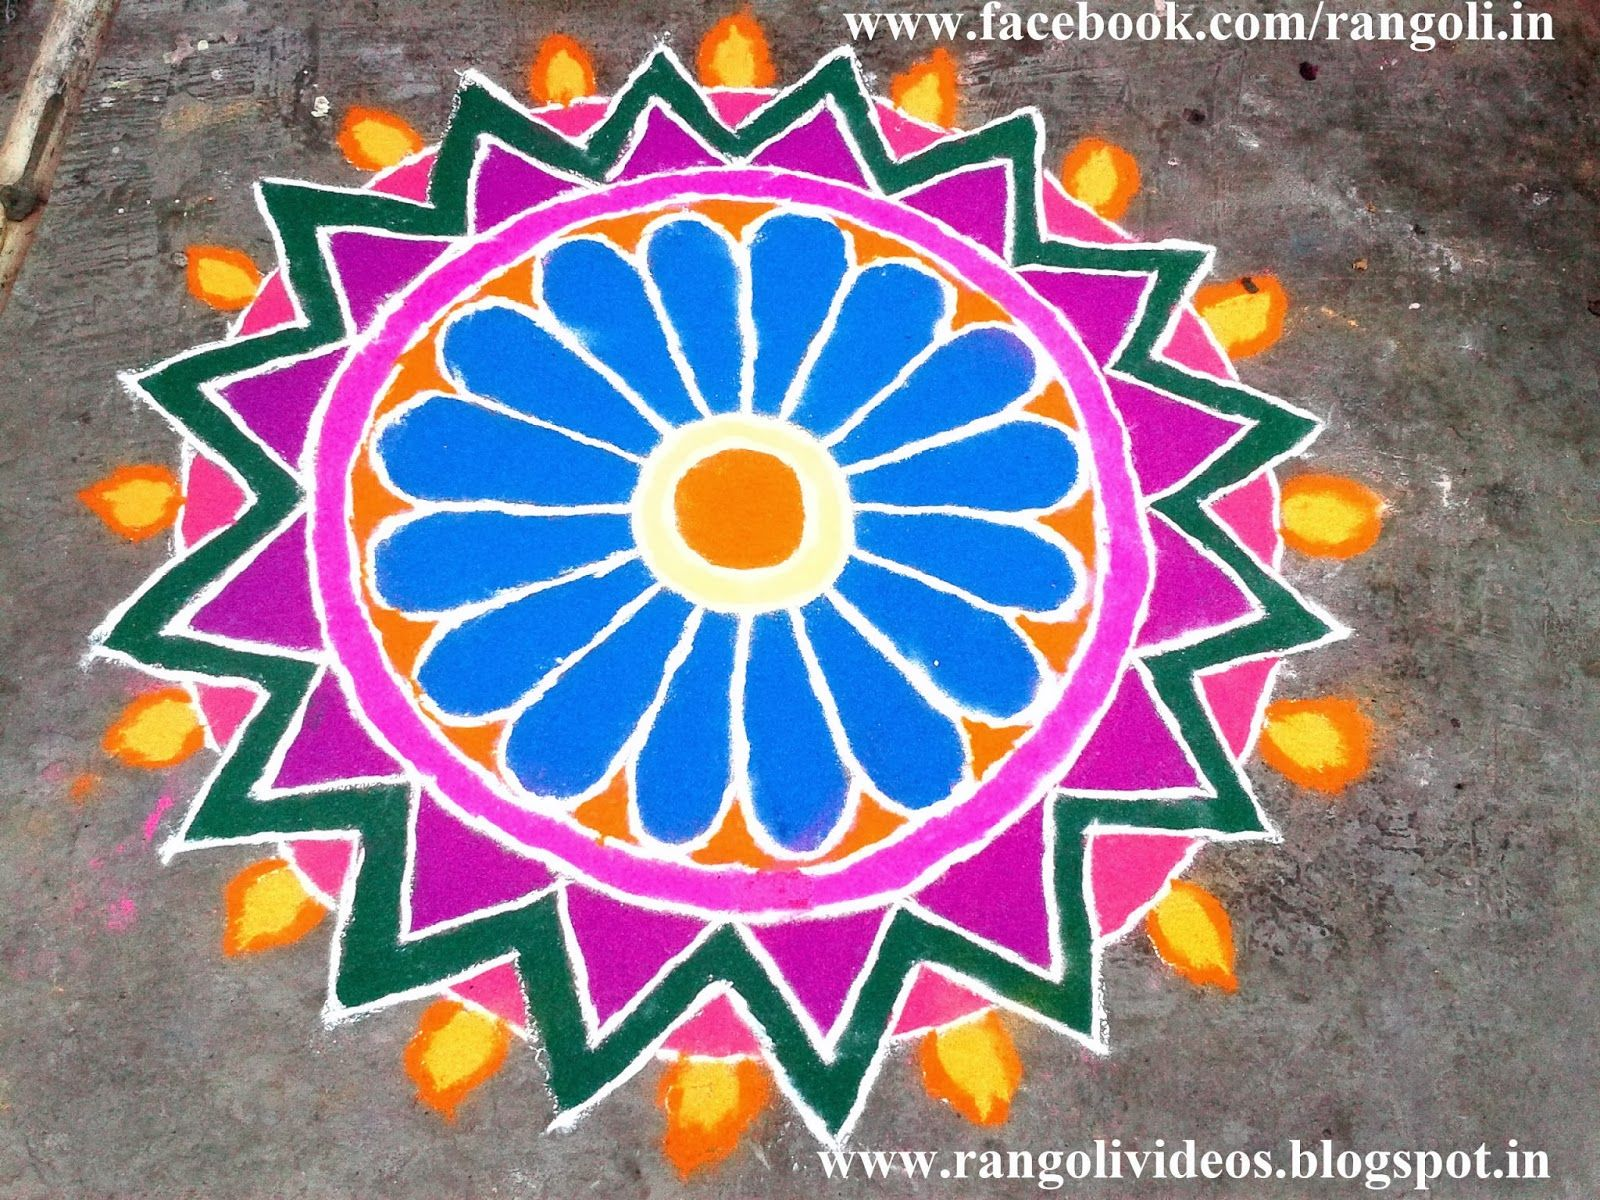 33   Amazing Rangoli Designs For Competition With Concepts for Rangoli Designs For Competition With Concepts For Kids  166kxo